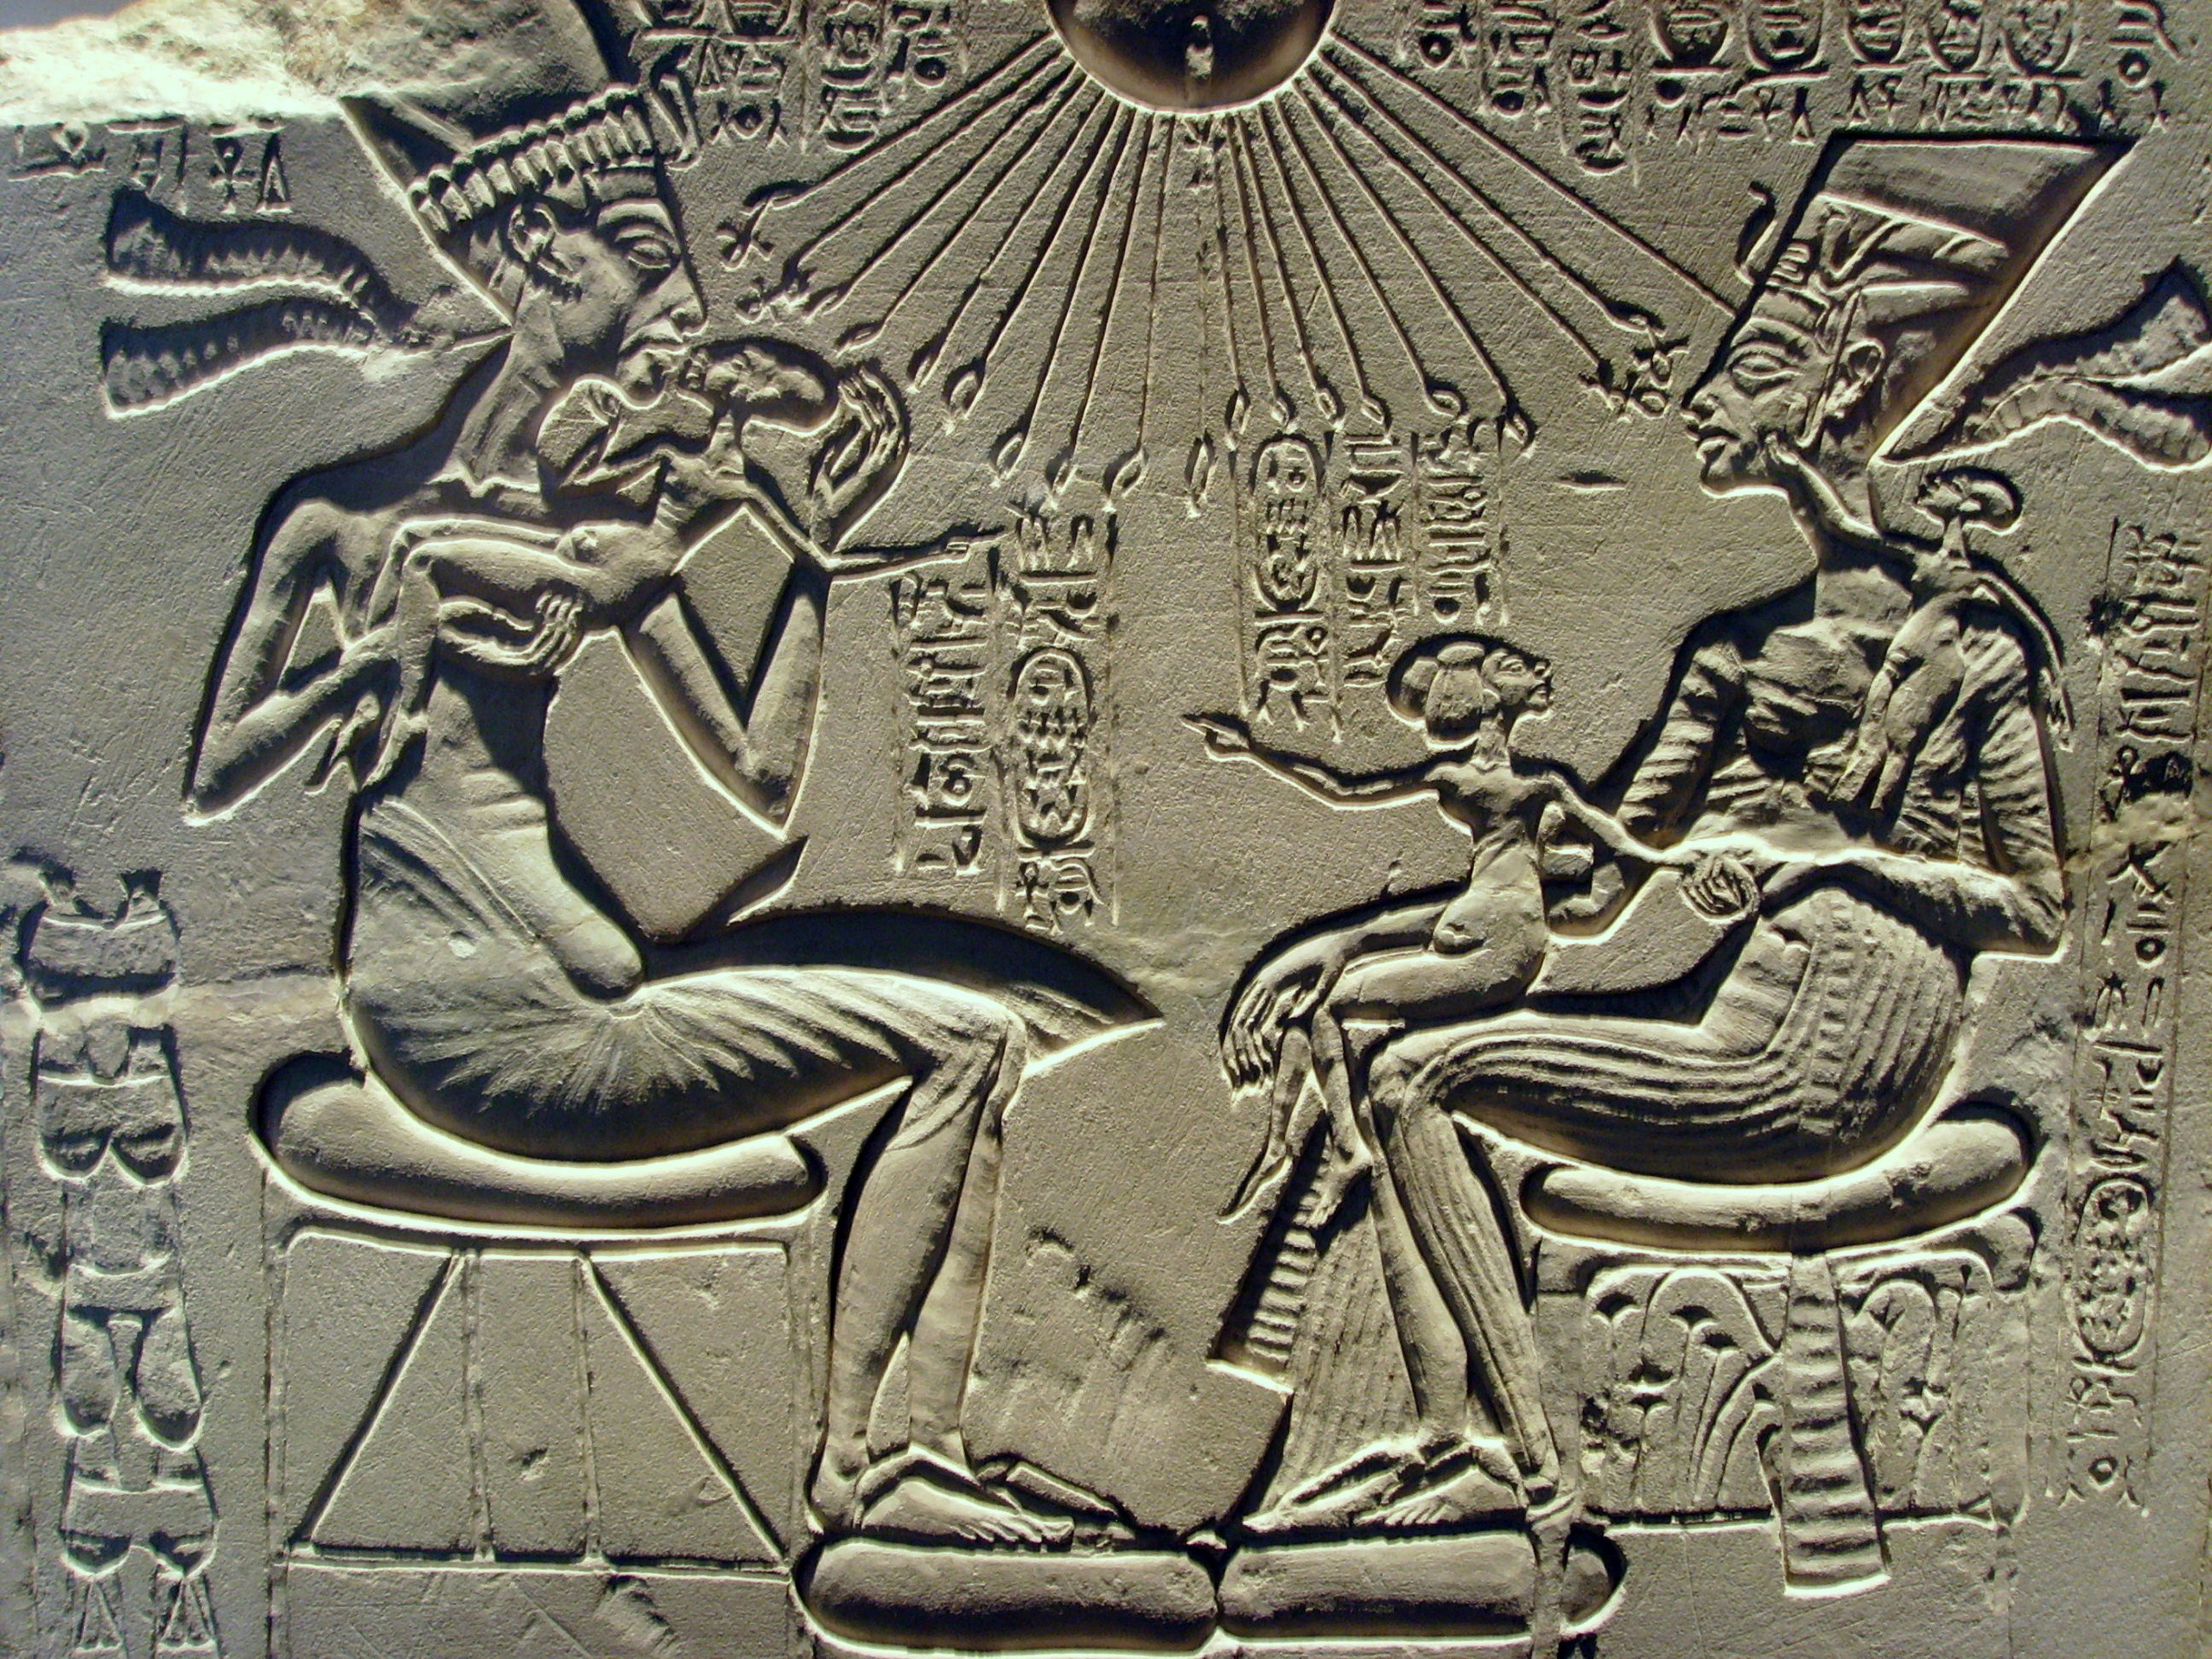 Res: 2560x1920, Ancient Aliens images akhenaten_nefertiti_and_their_children HD wallpaper  and background photos